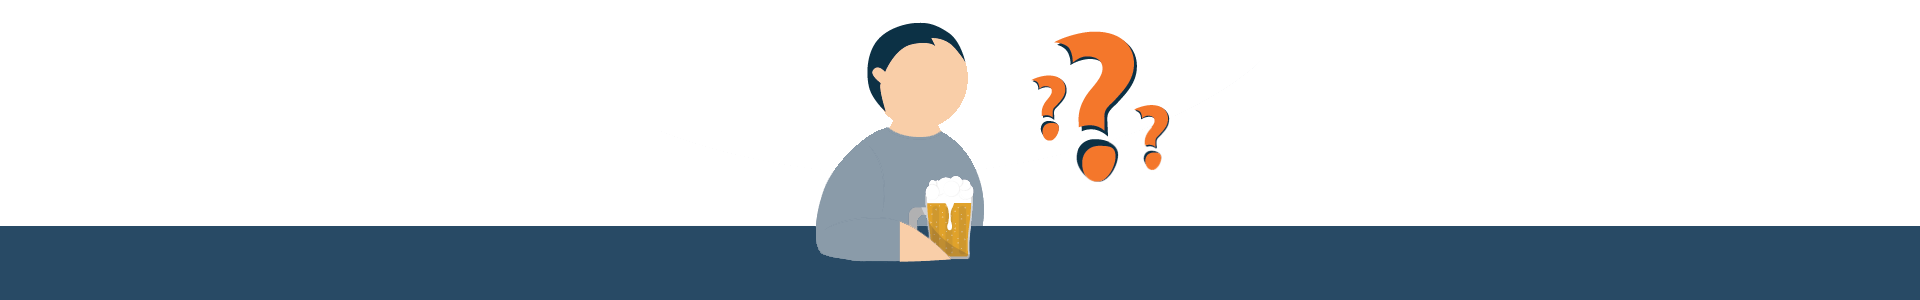 Illustration of Drinking Draft Beer